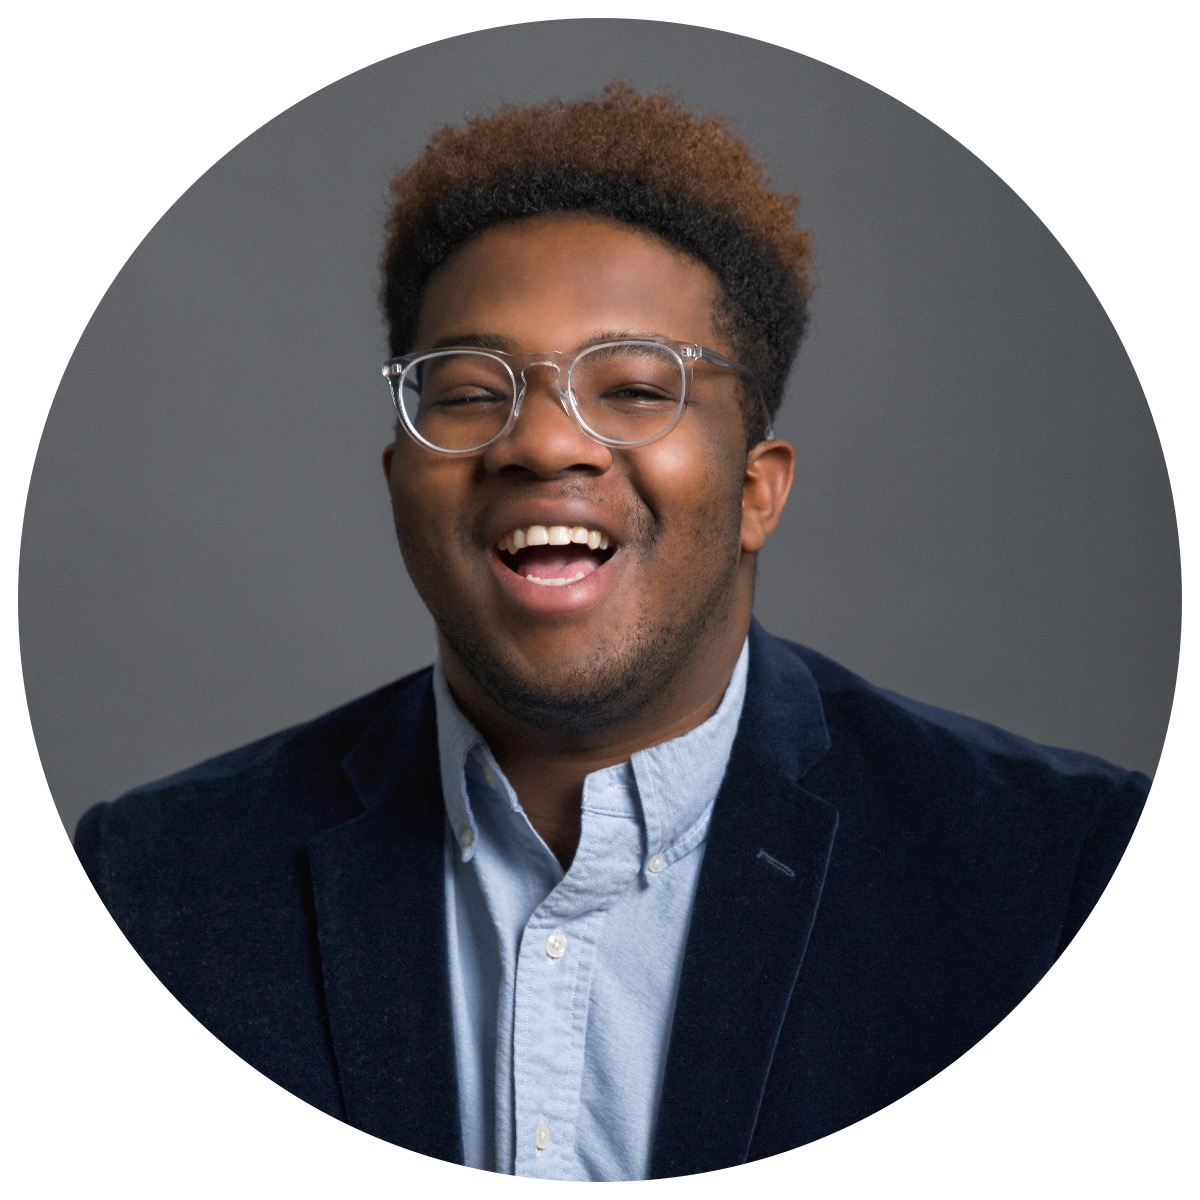 Michael Payne | Communications  PUBLIC RELATIONS   Pursuing a Bachelors degree in Corporate Communications and Public Relations at Belmont University, Michael is interested in using media outlets to promote the importance of diversity and inclusion across all sectors.